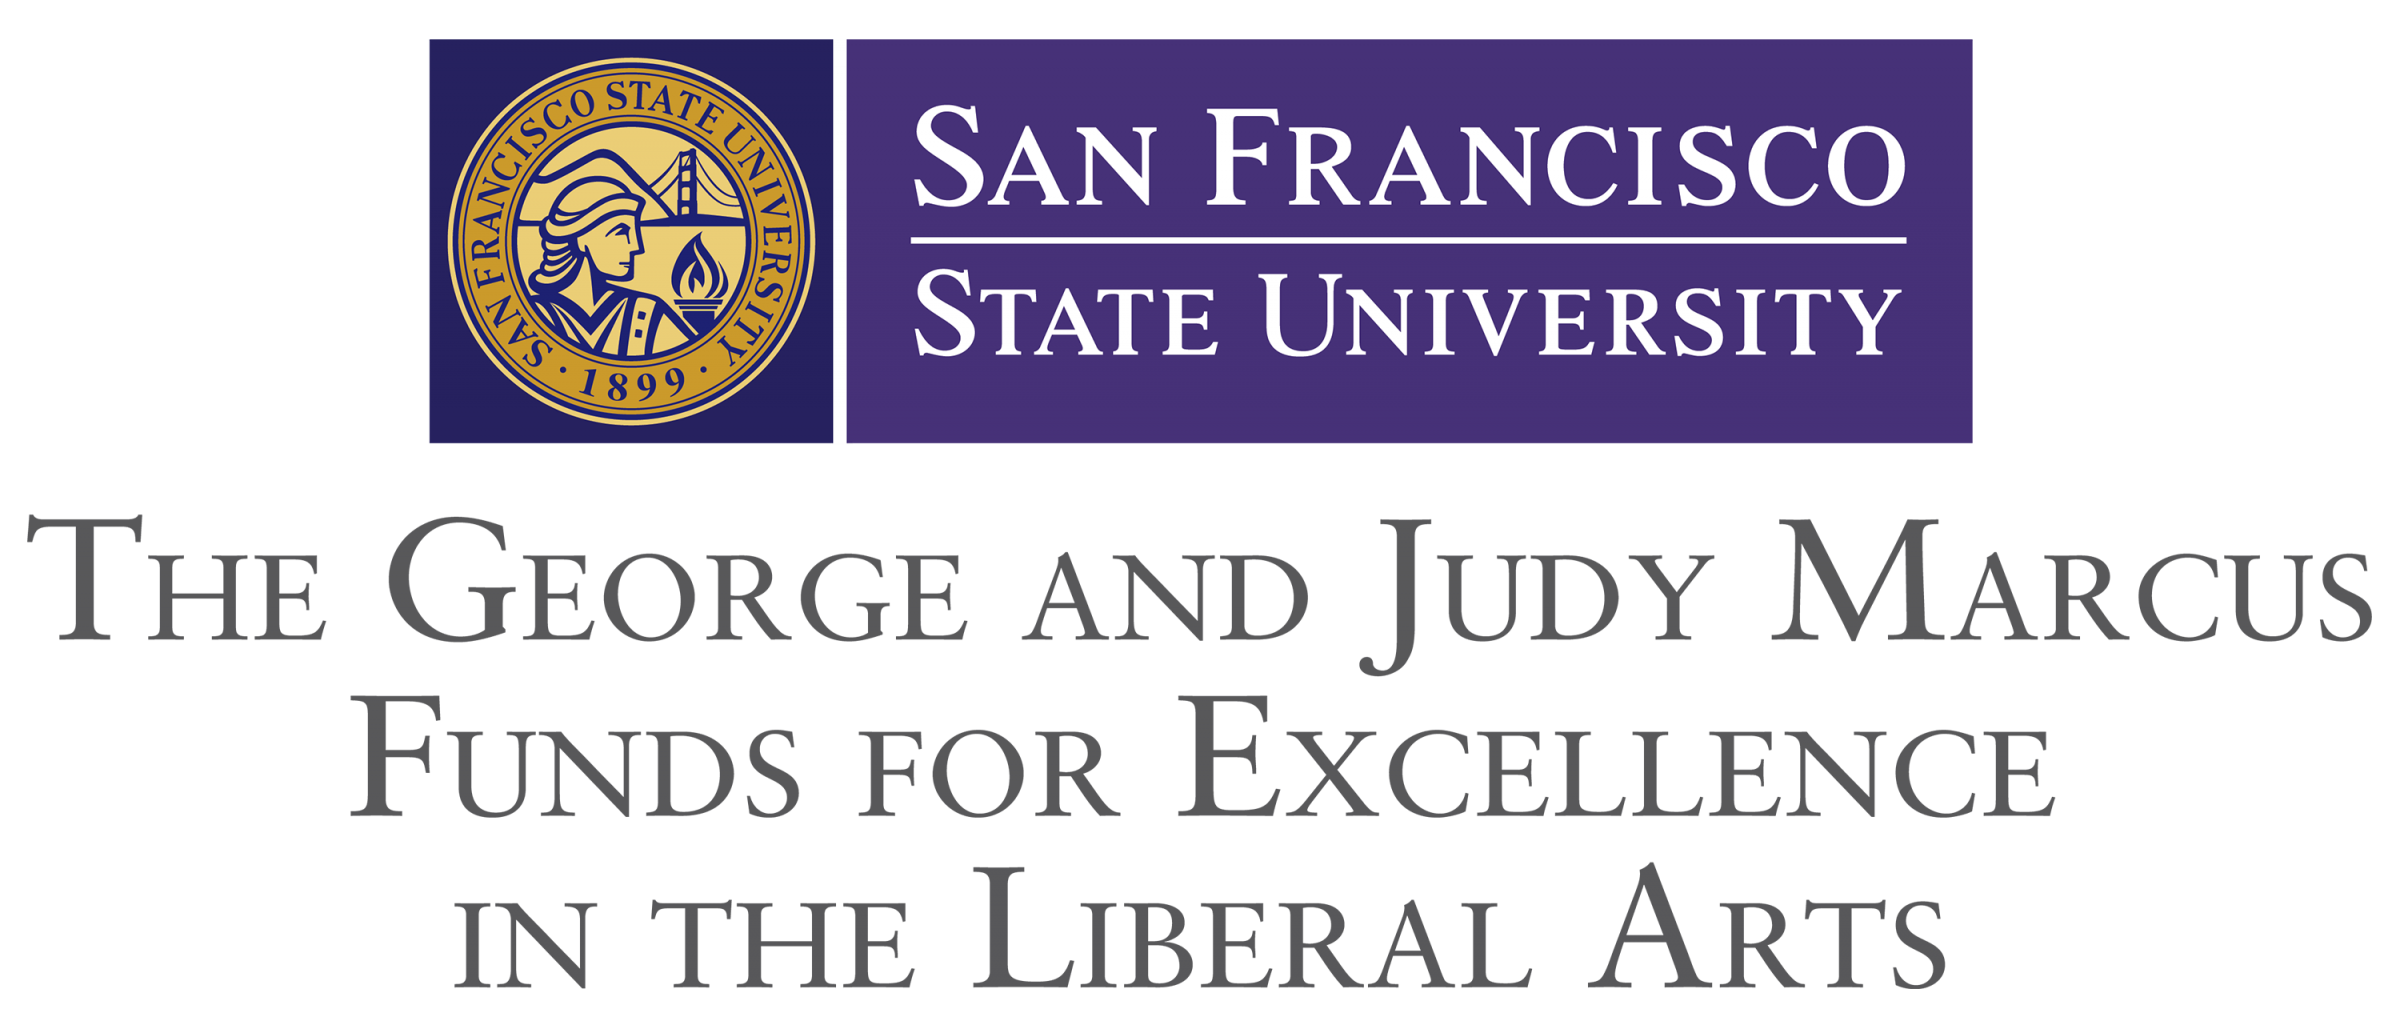 The George and Judy Marcus Fund for Excellence in the Liberal Arts